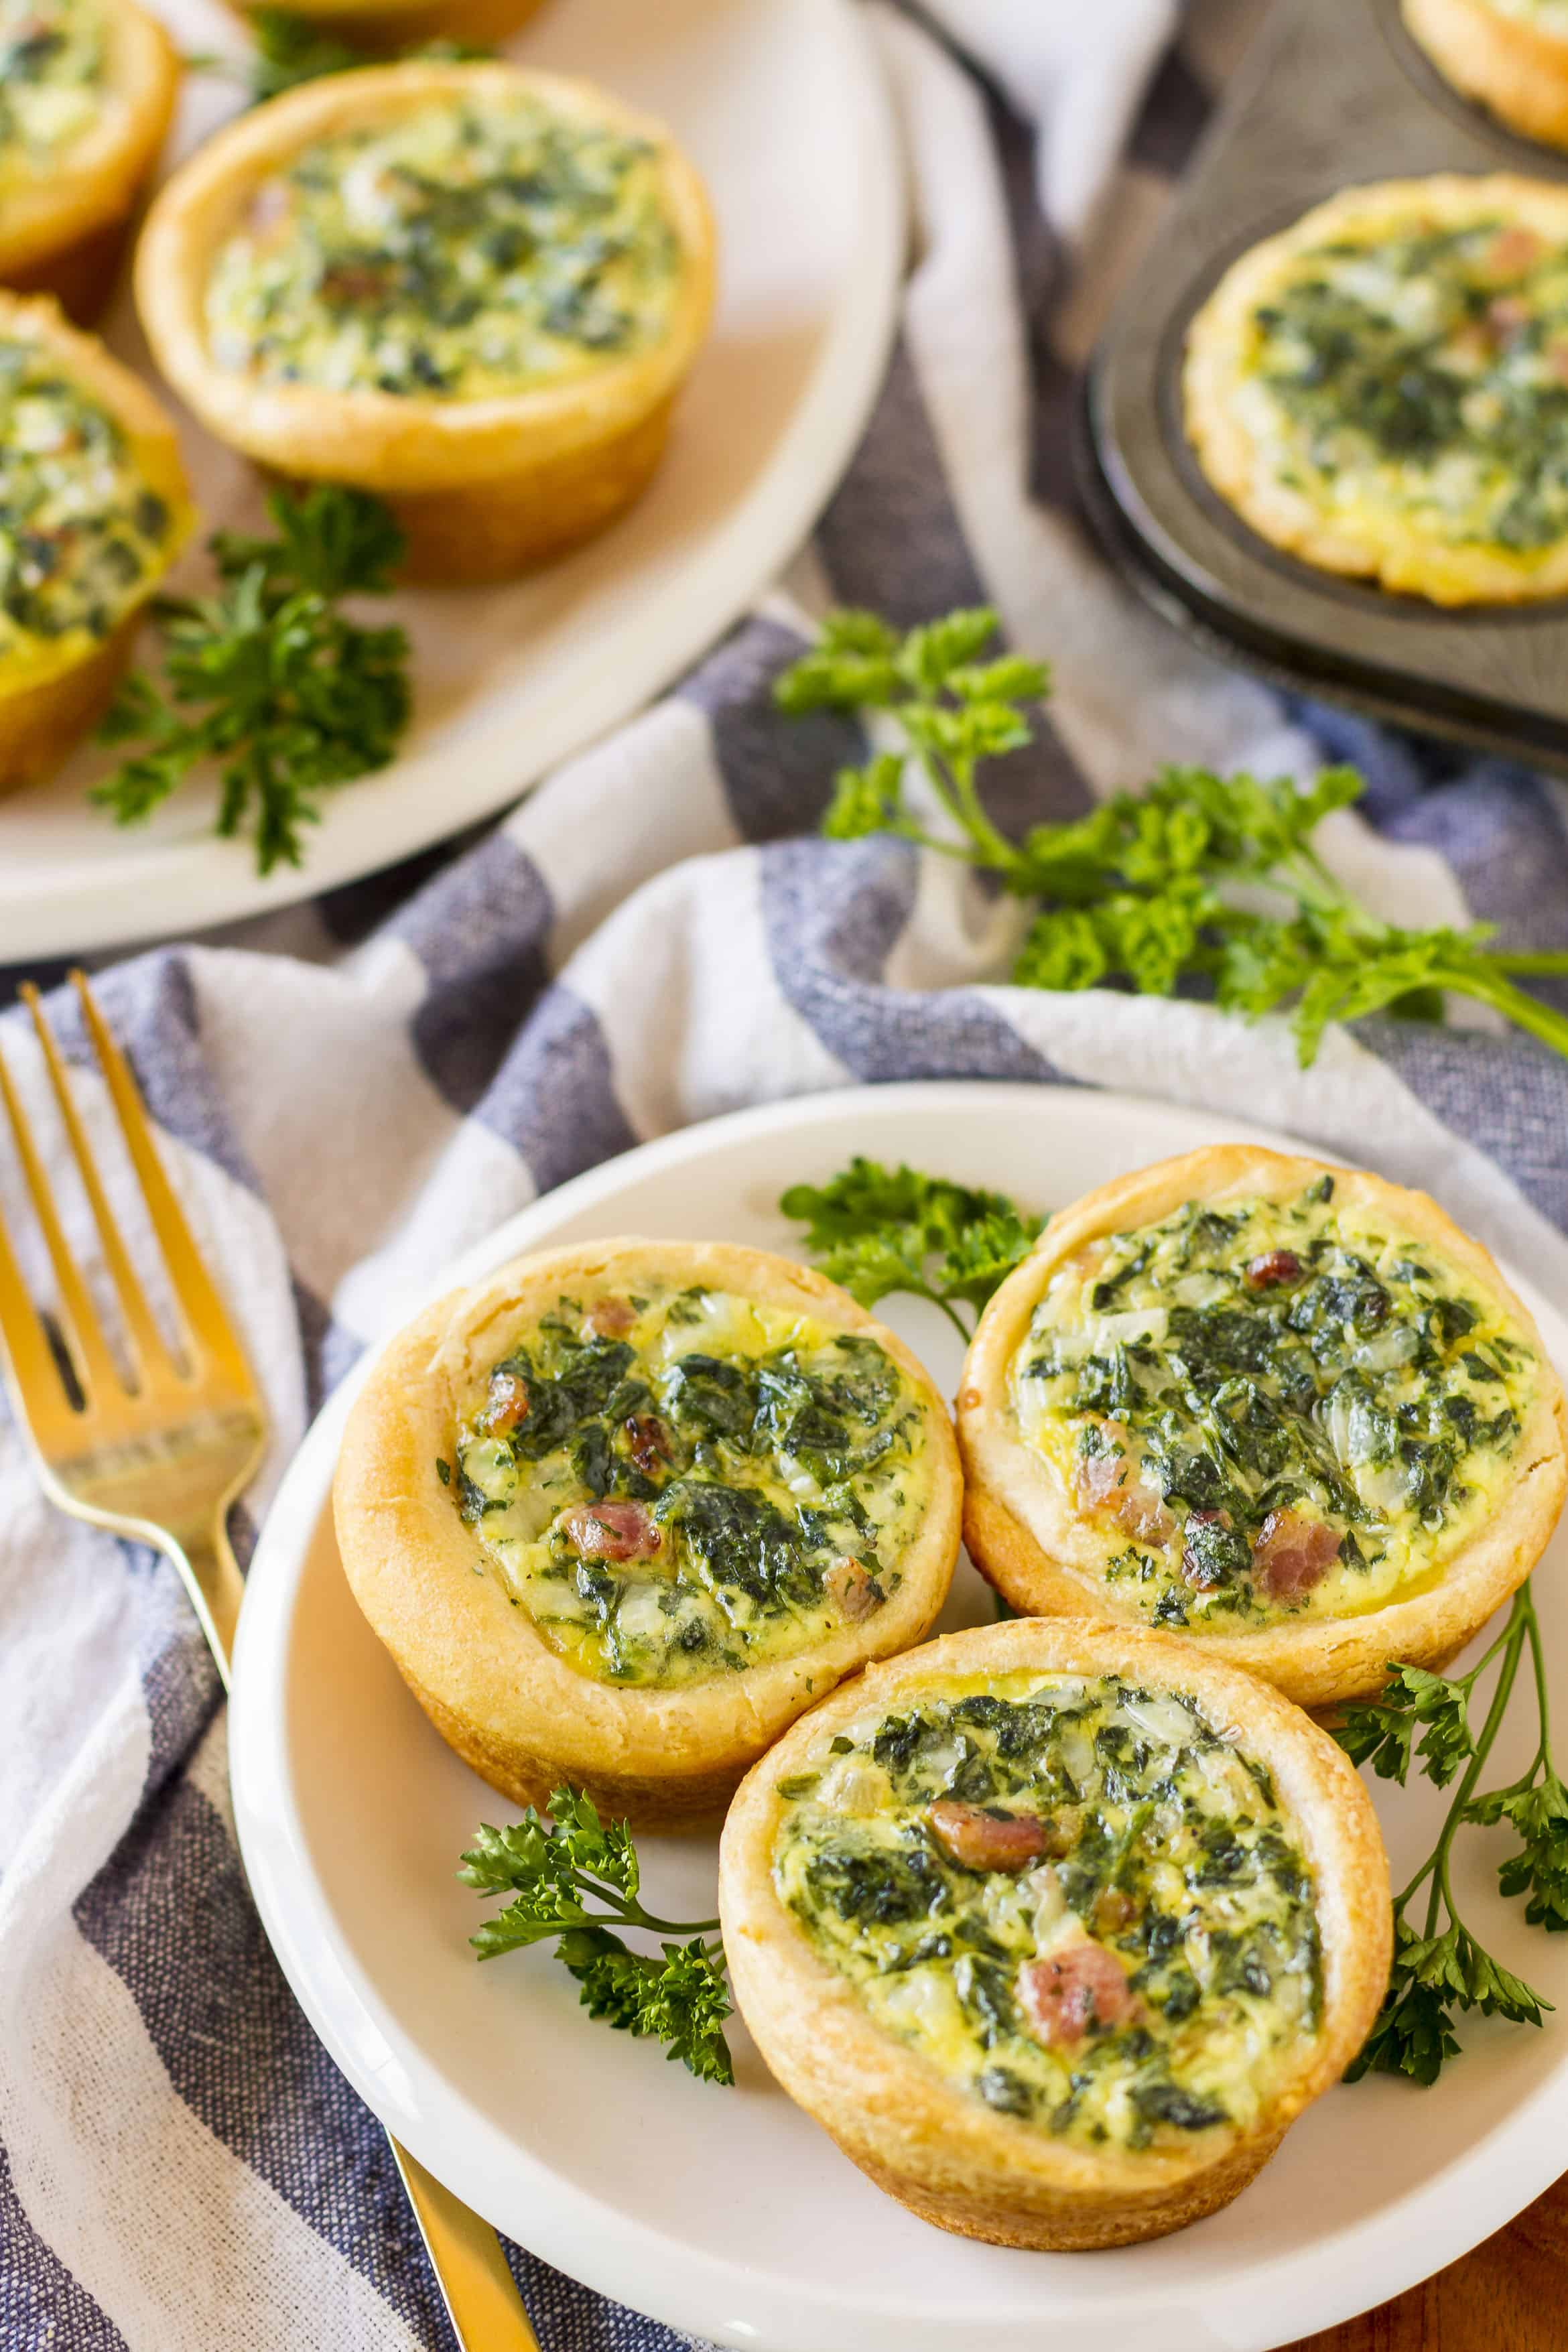 Mini Spinach Quiche -- these cute little mini quiche filled with spinach and bacon are a delicious and filling brunch idea! They're also very tasty cold, making them an excellent on the go breakfast option… | easy mini spinach quiche | mini spinach quiche recipe | mini spinach quiche brunch | mini spinach quiche crescent rolls | find the recipe on unsophisticook.com